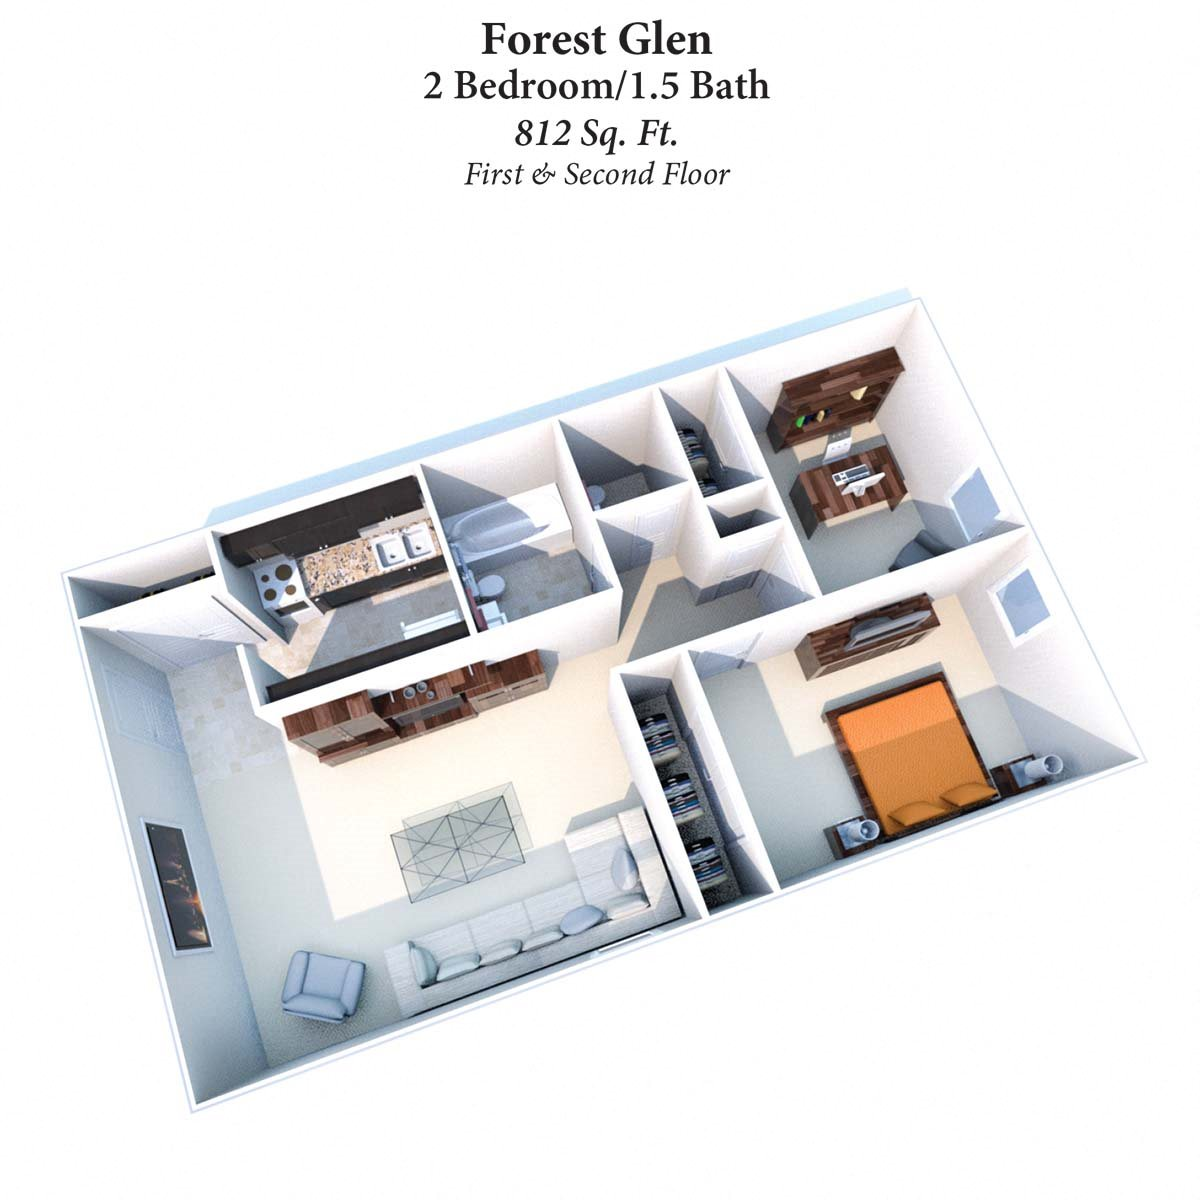 2B/1.5B Forest Glen 812SqFt Floor Plan 5